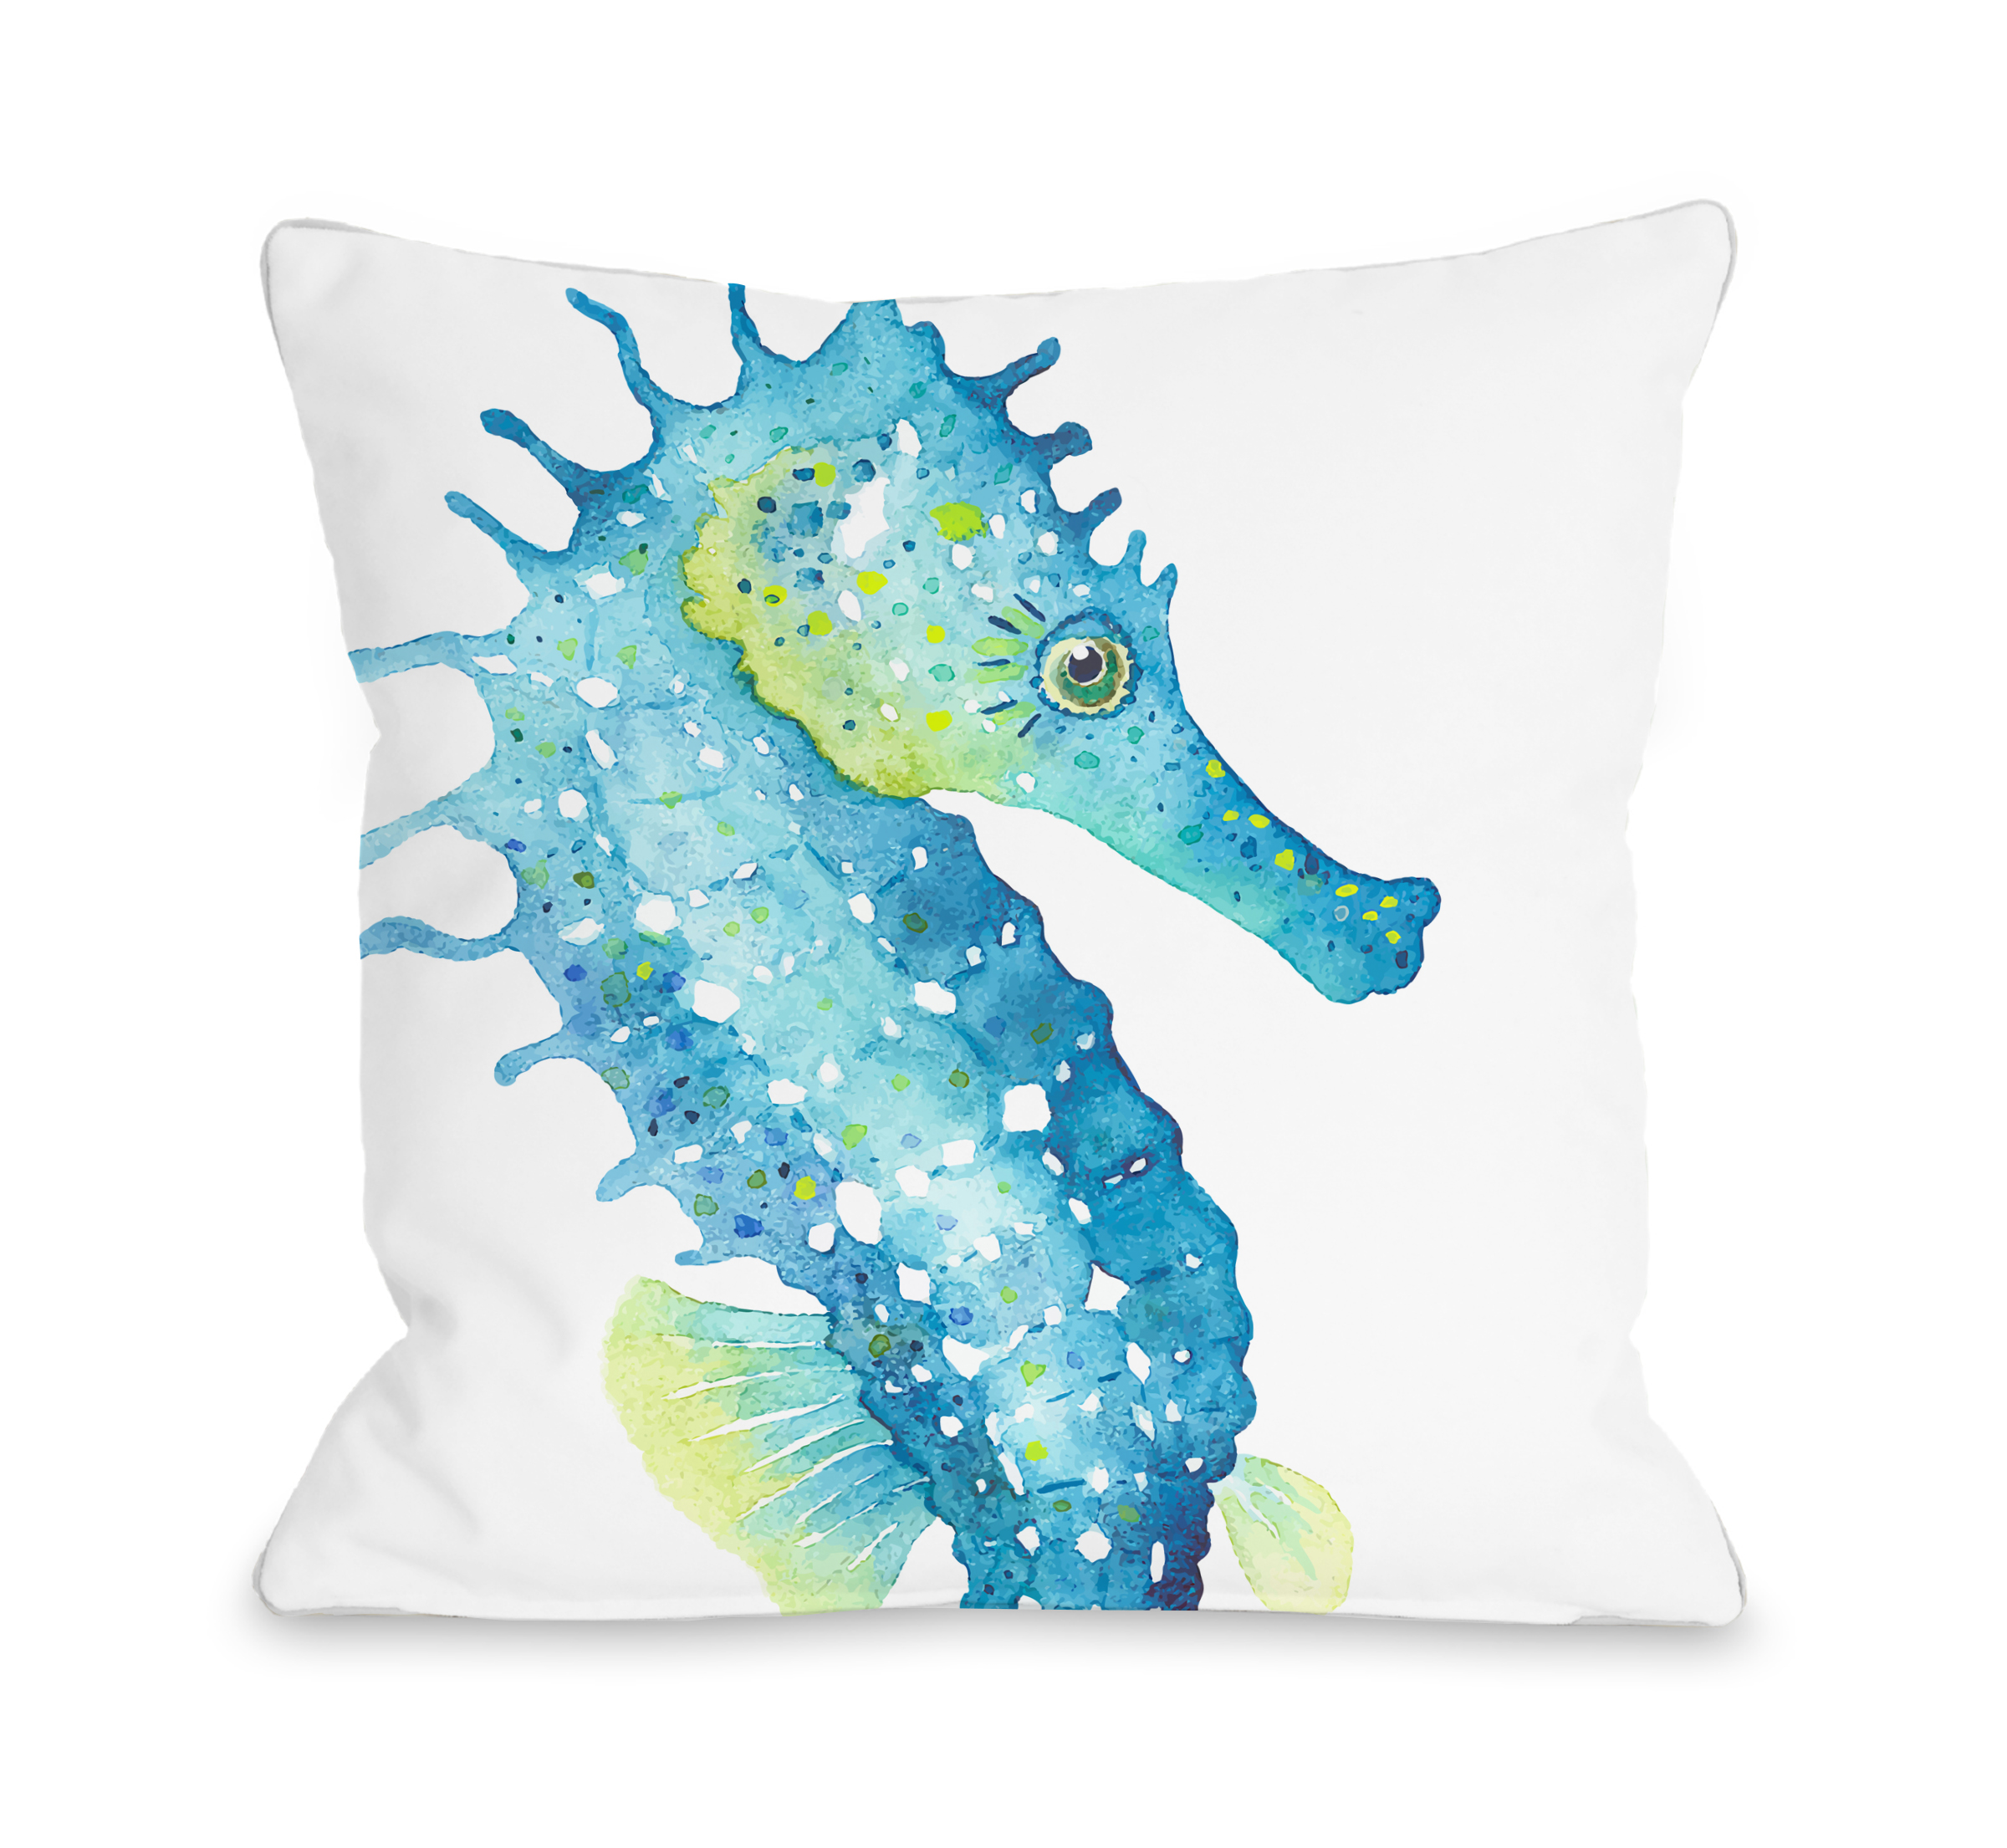 Oversized Seahorse - Green Blue 18x18 Pillow by OBC